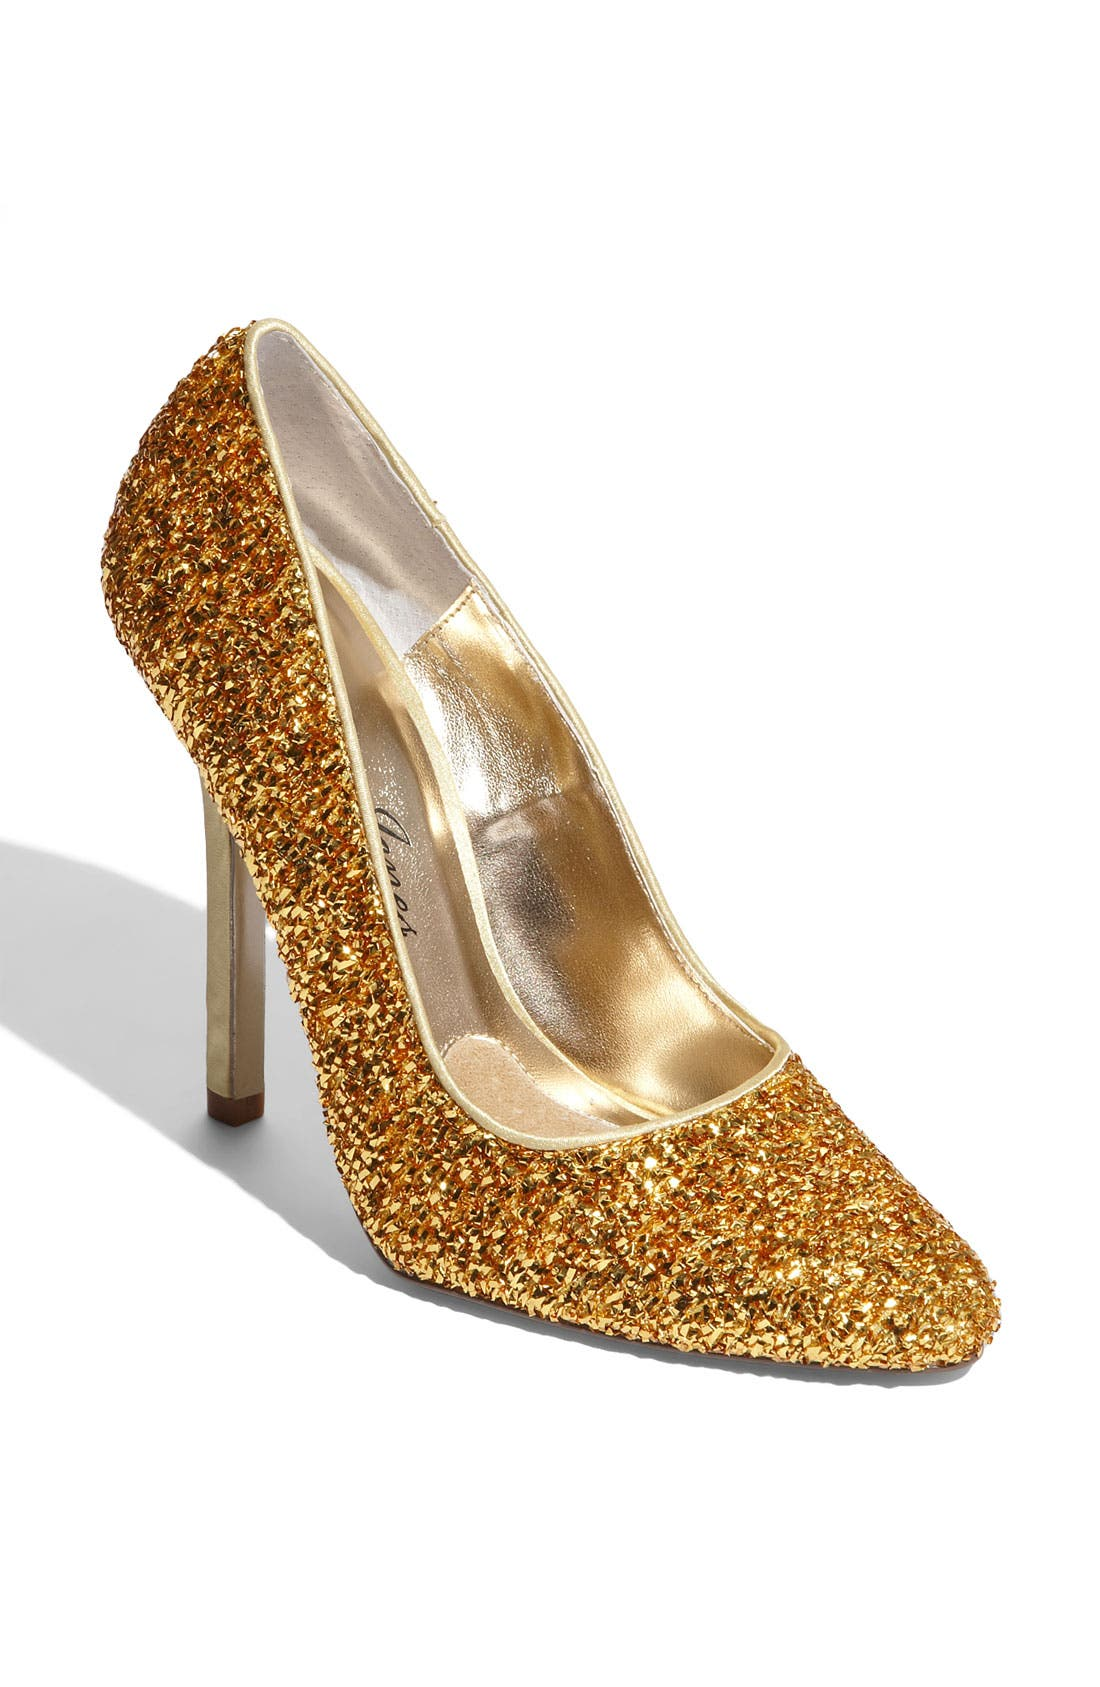 Alternate Image 1 Selected - Lauren Jones 'Zinger' Pump